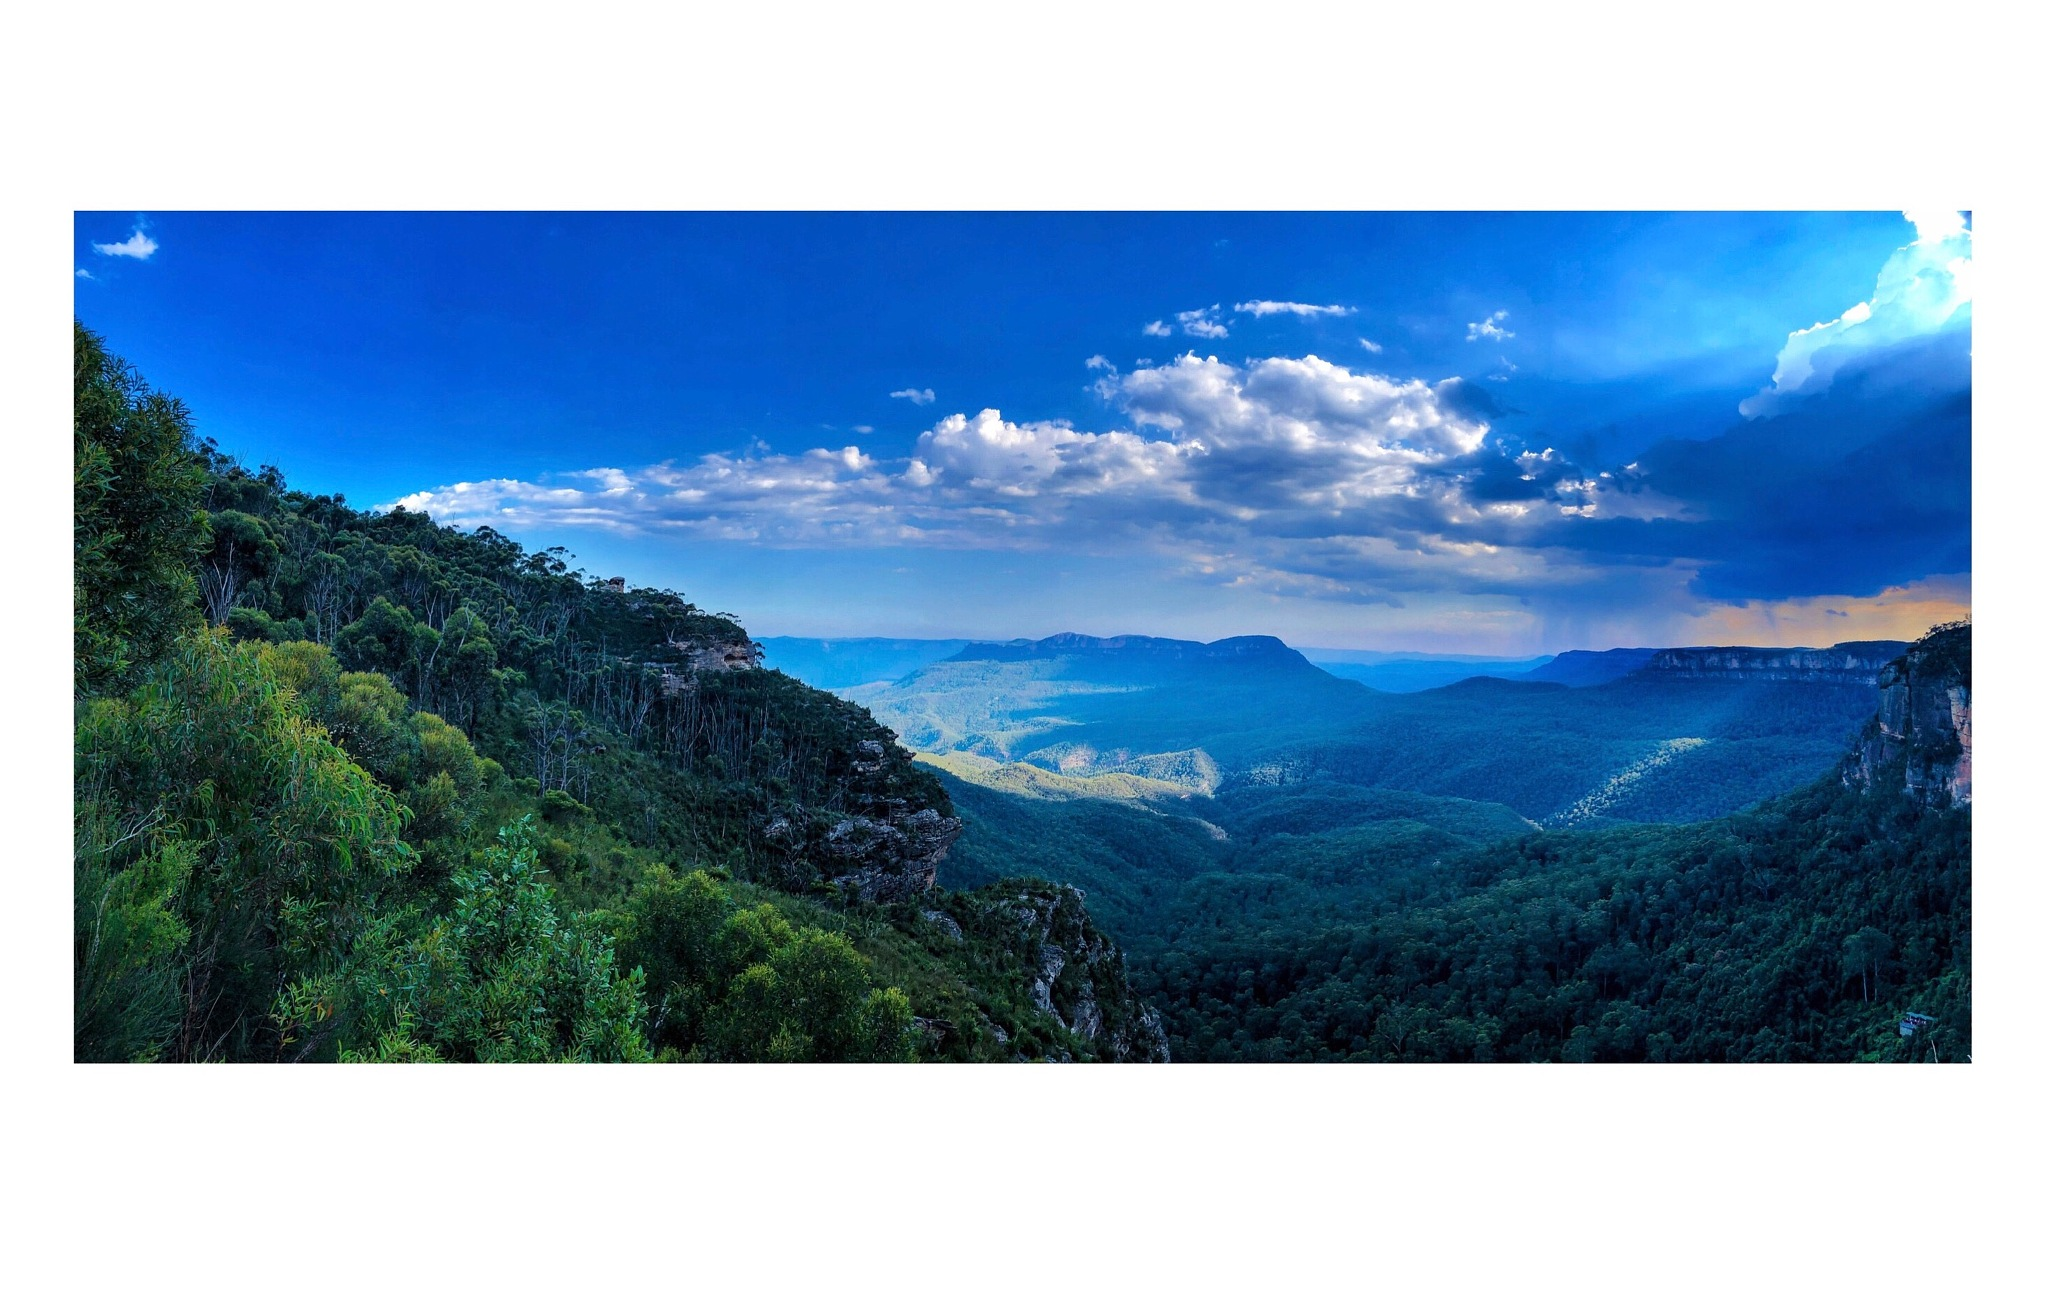 The blue mountains by the_shutter_donut